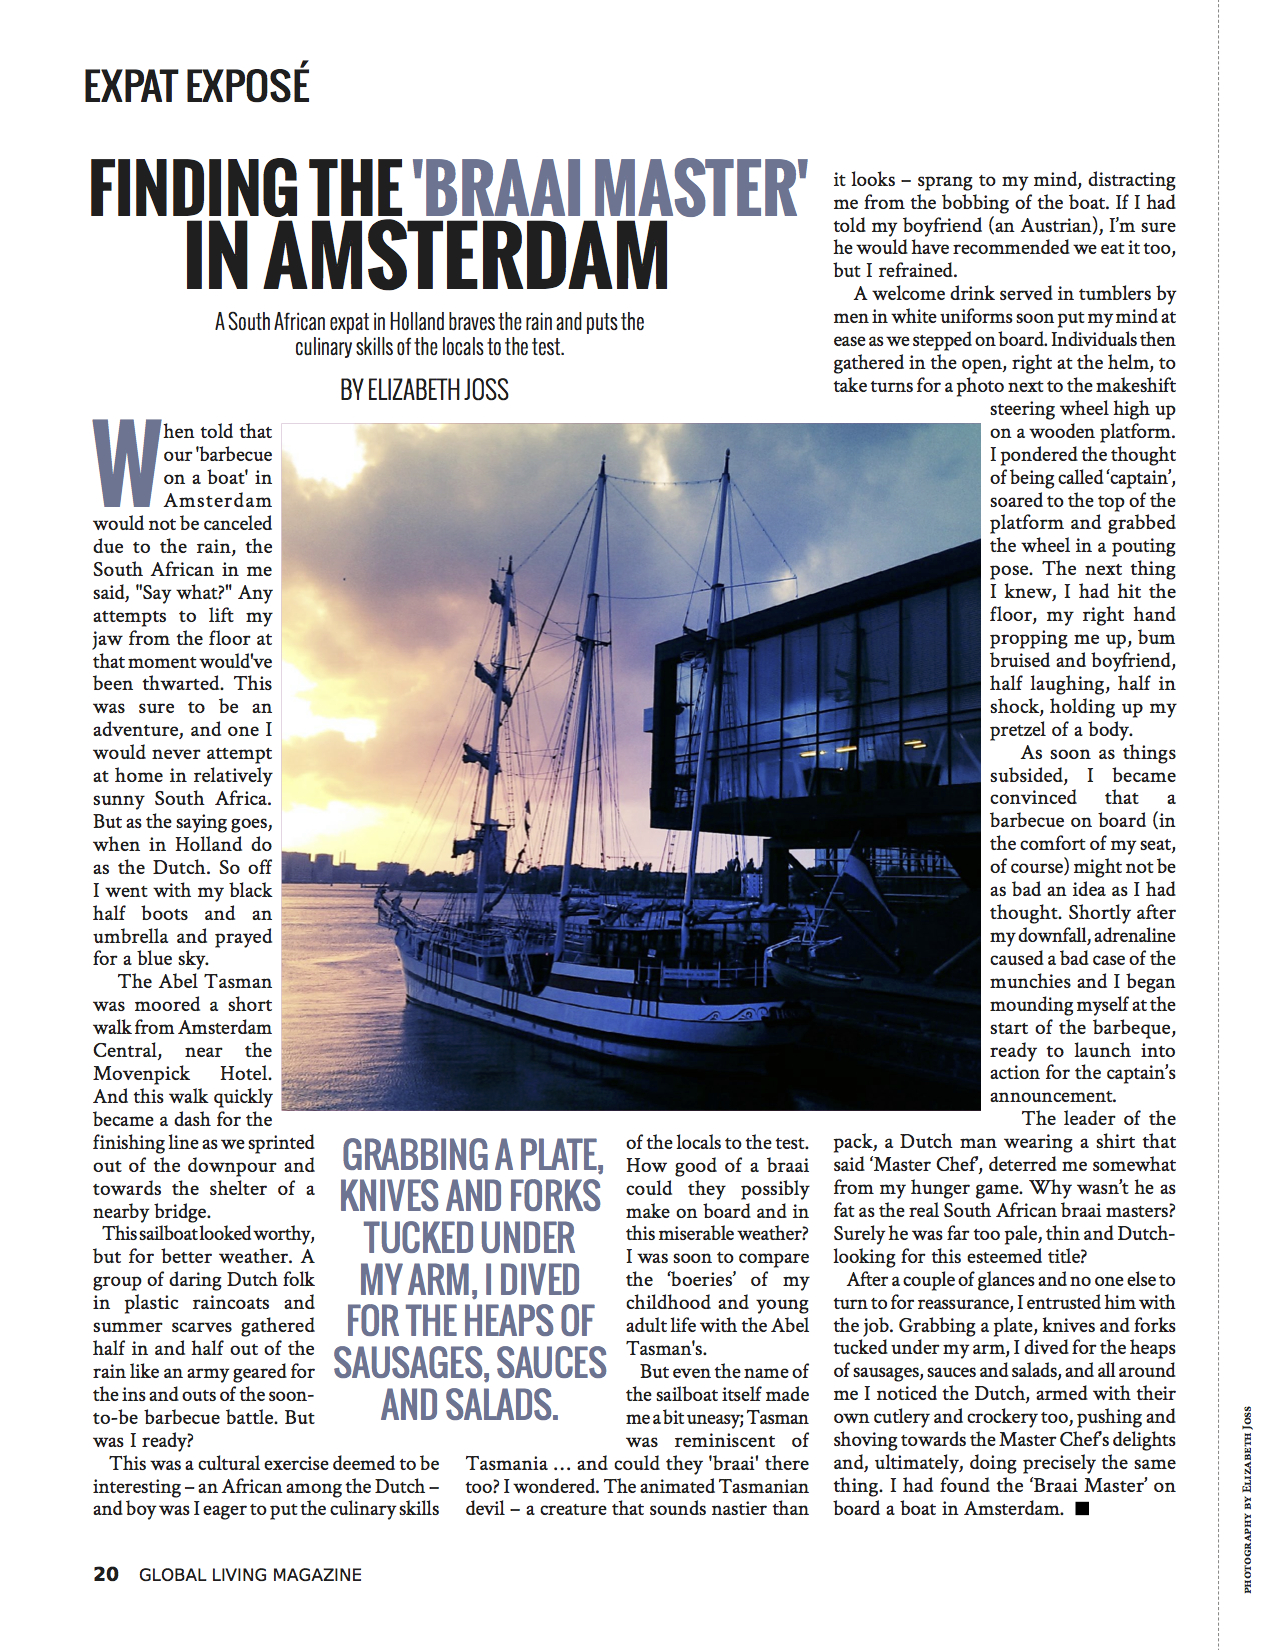 Feature Article - 'Finding the 'Braai Master' in Amsterdam' (Global Living Magazine, November 2014)